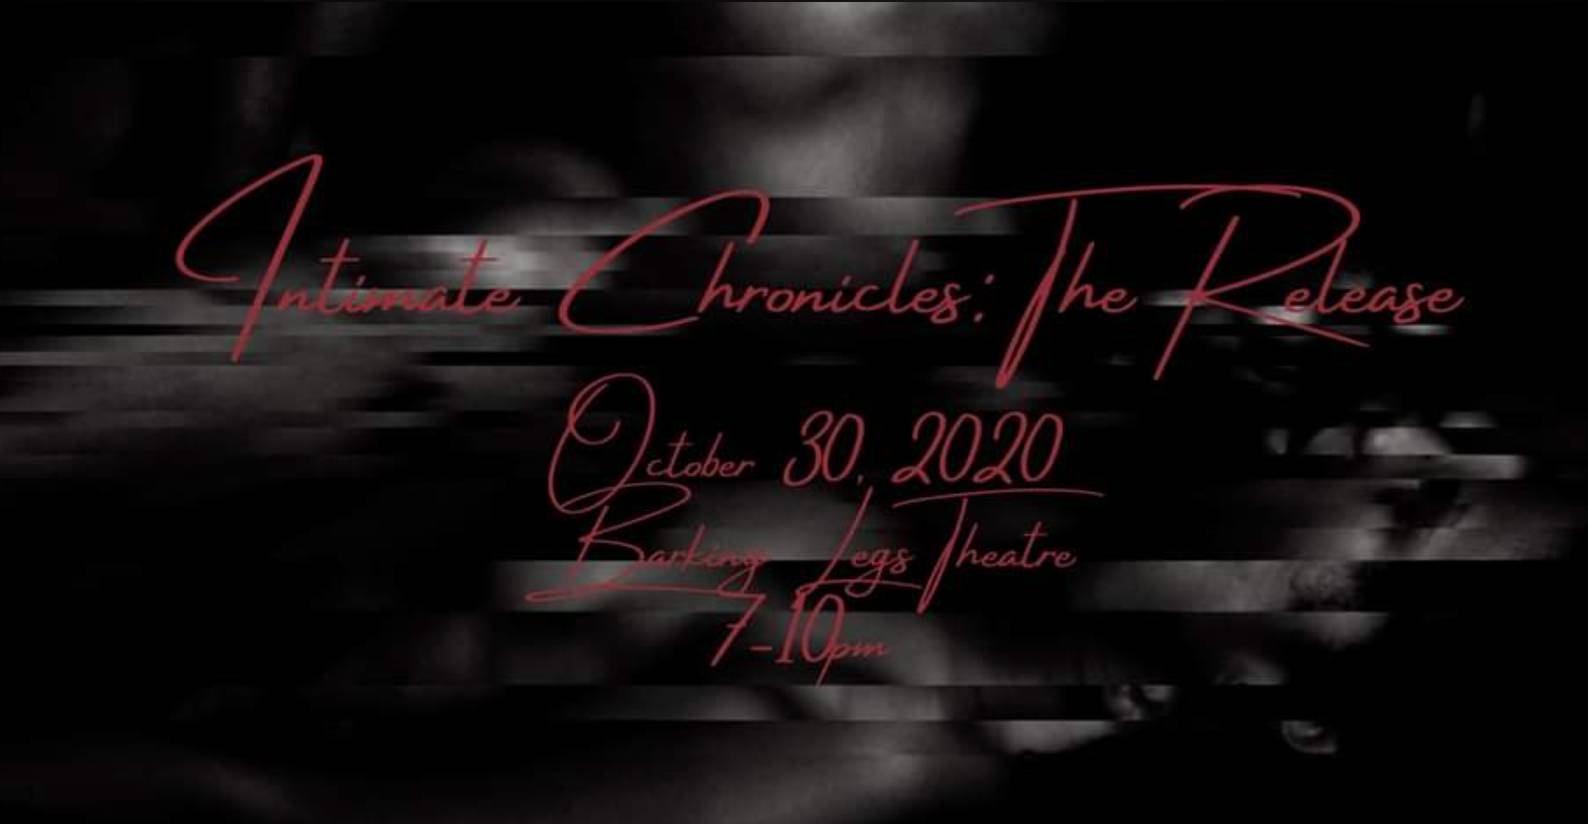 Intimate Chronicles: The Release